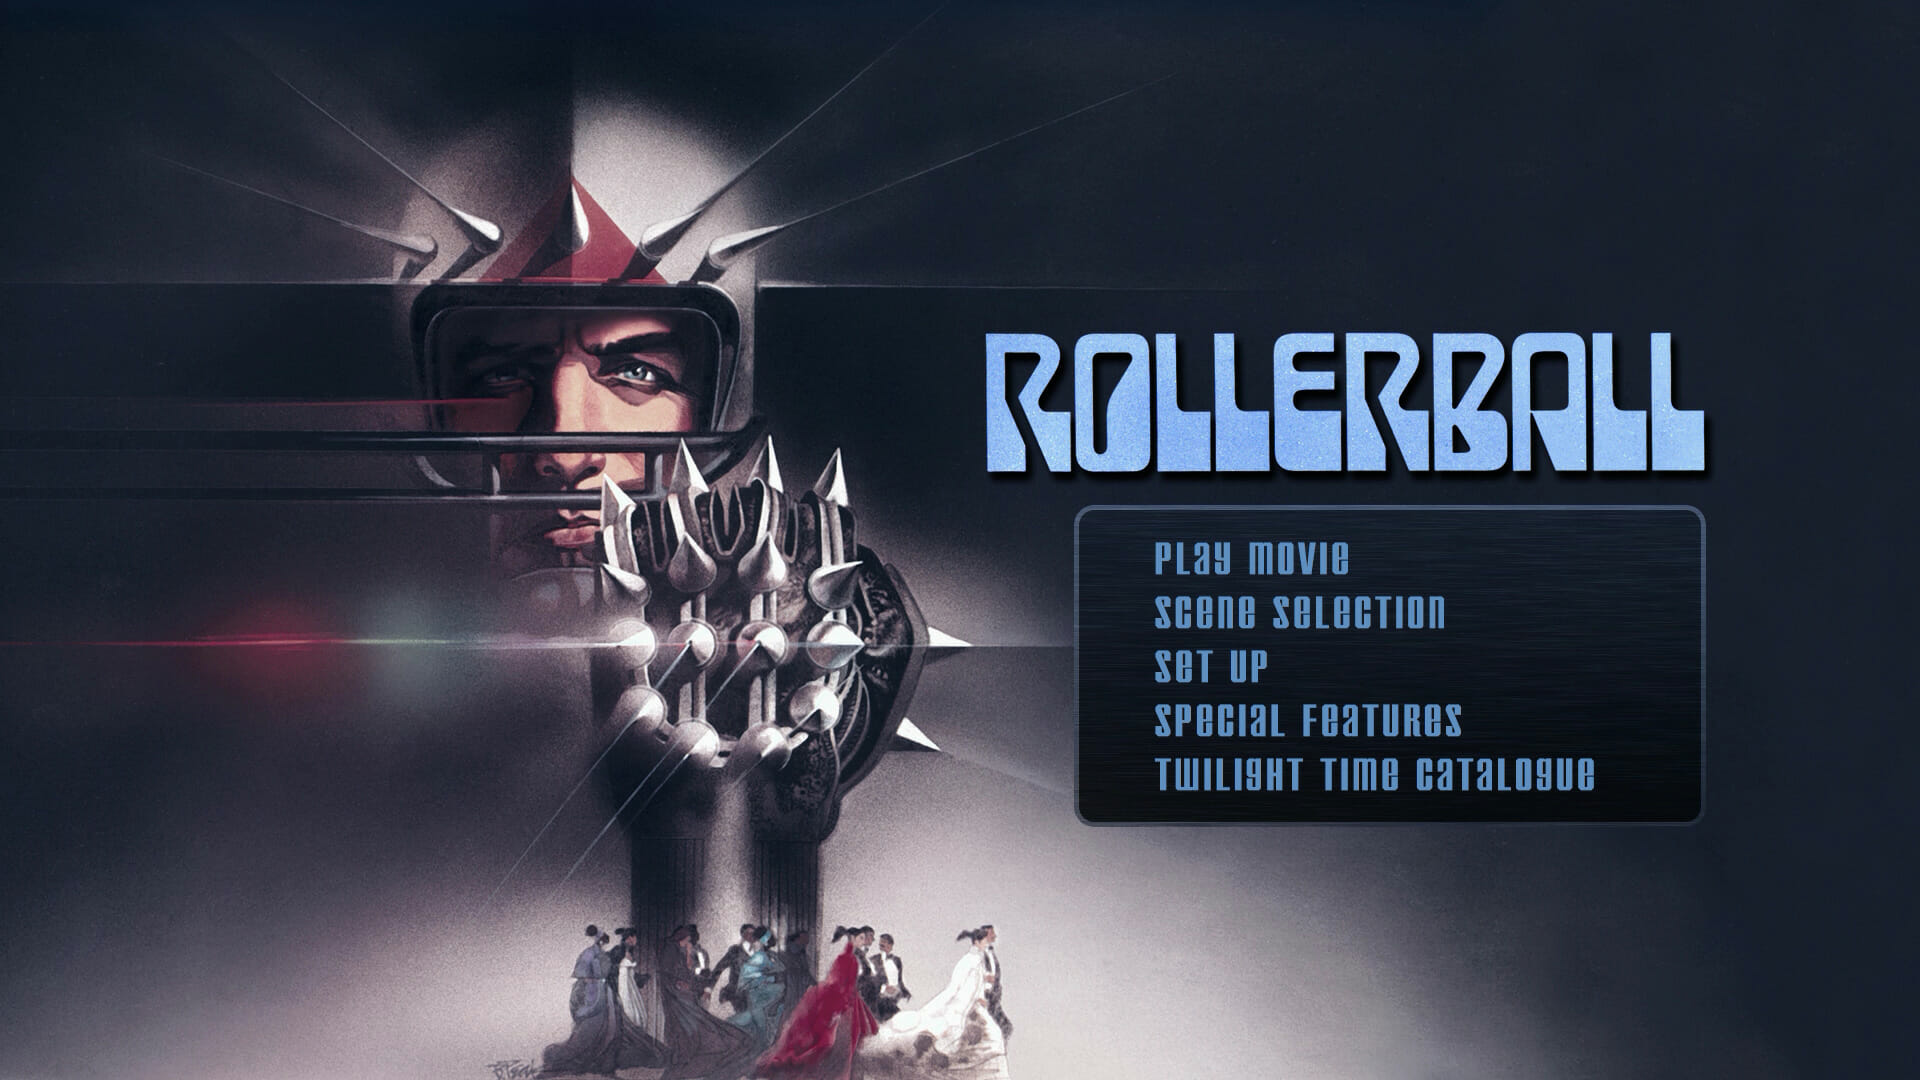 rollerball_03